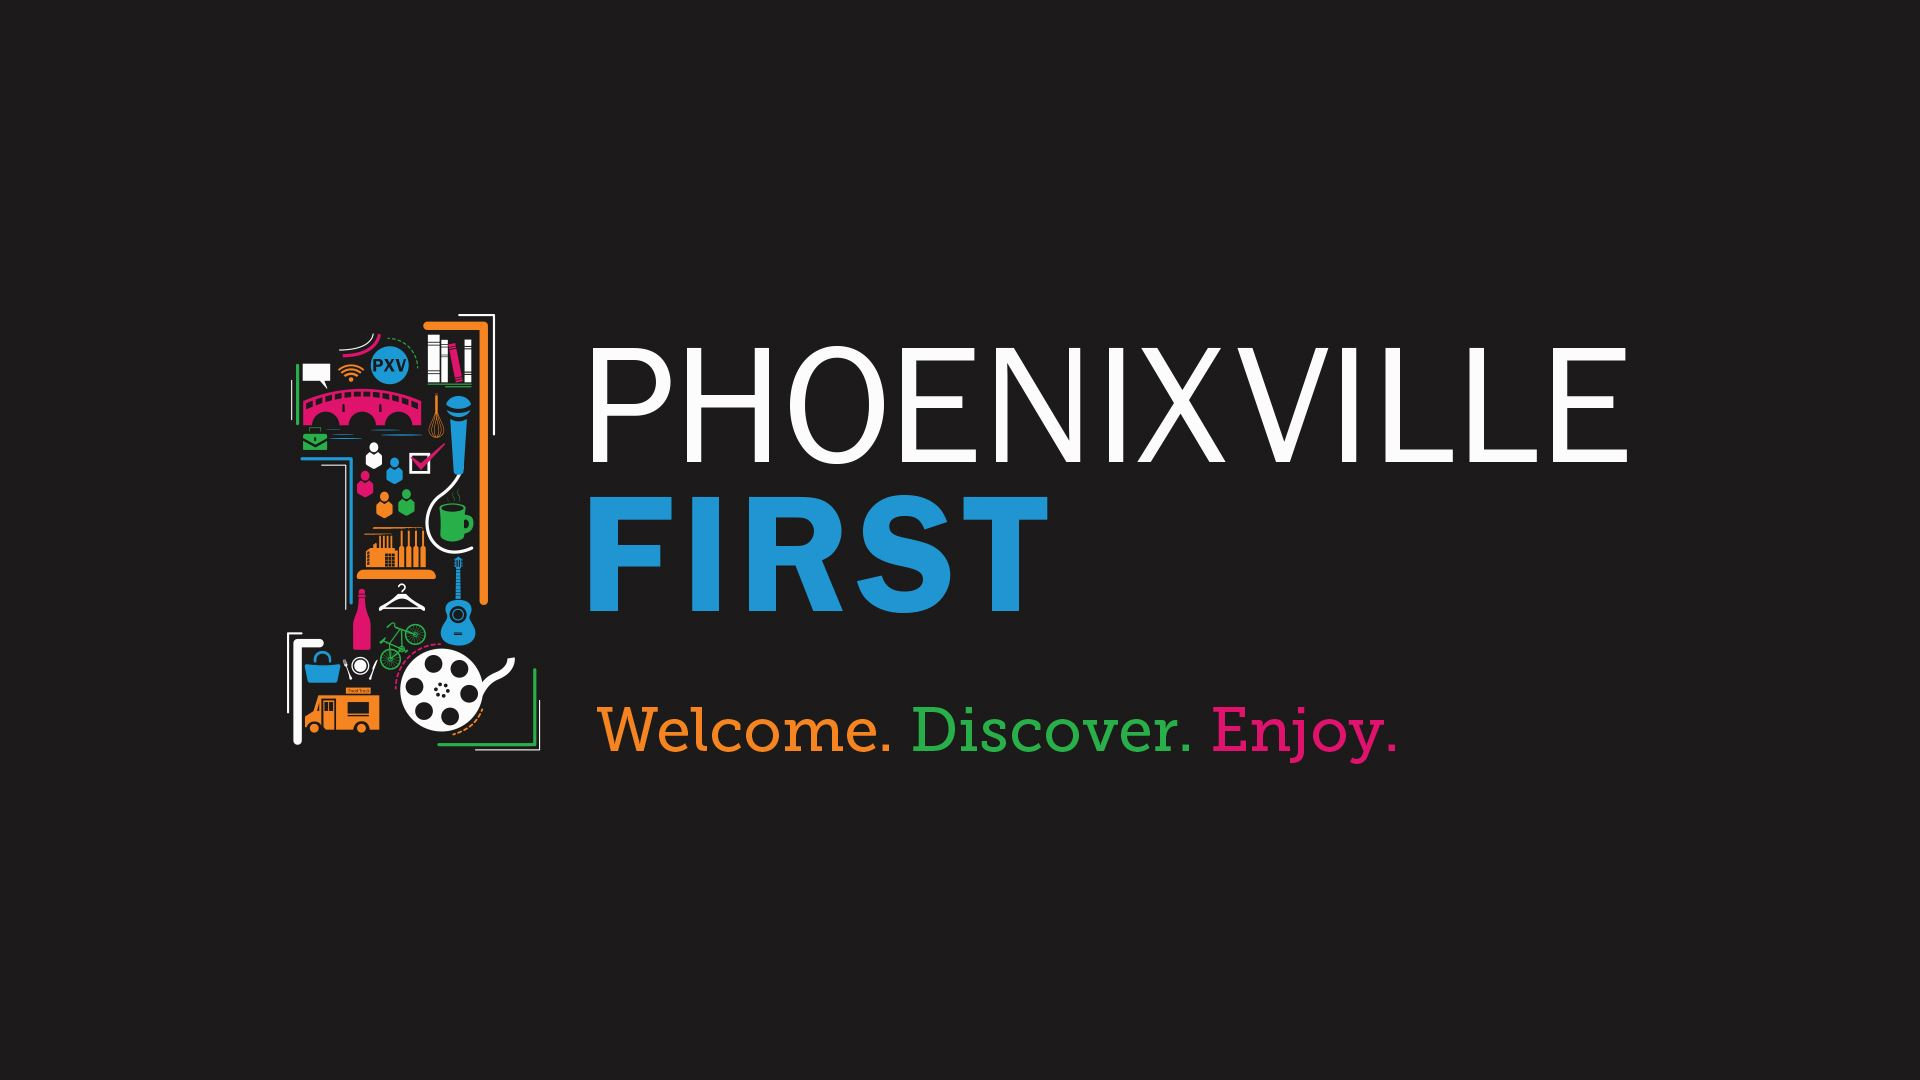 Phoenixville First Logo in Black